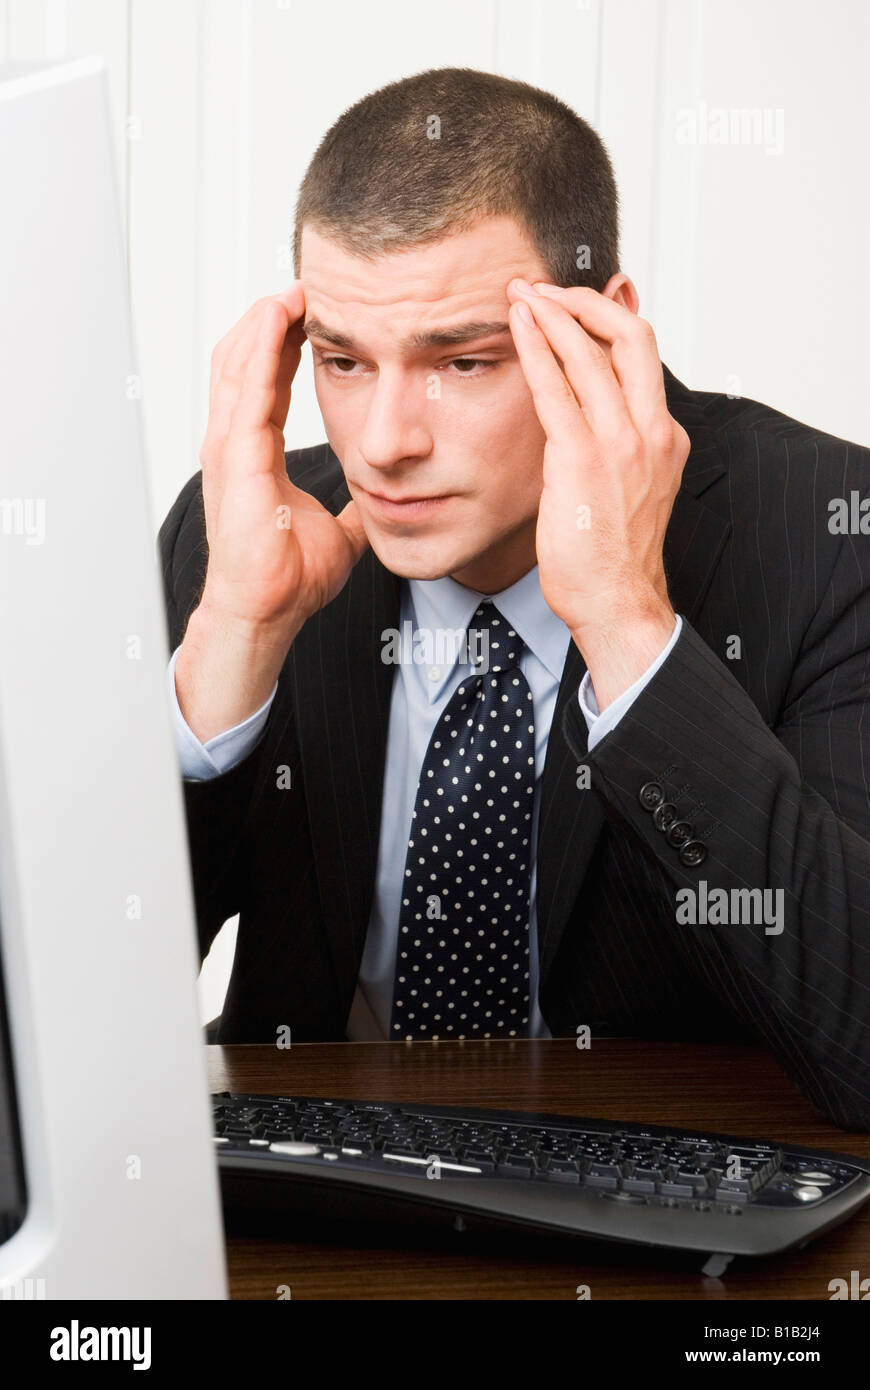 Businessman with hands on forehead looking at pc-screen, close-up, portrait - Stock Image